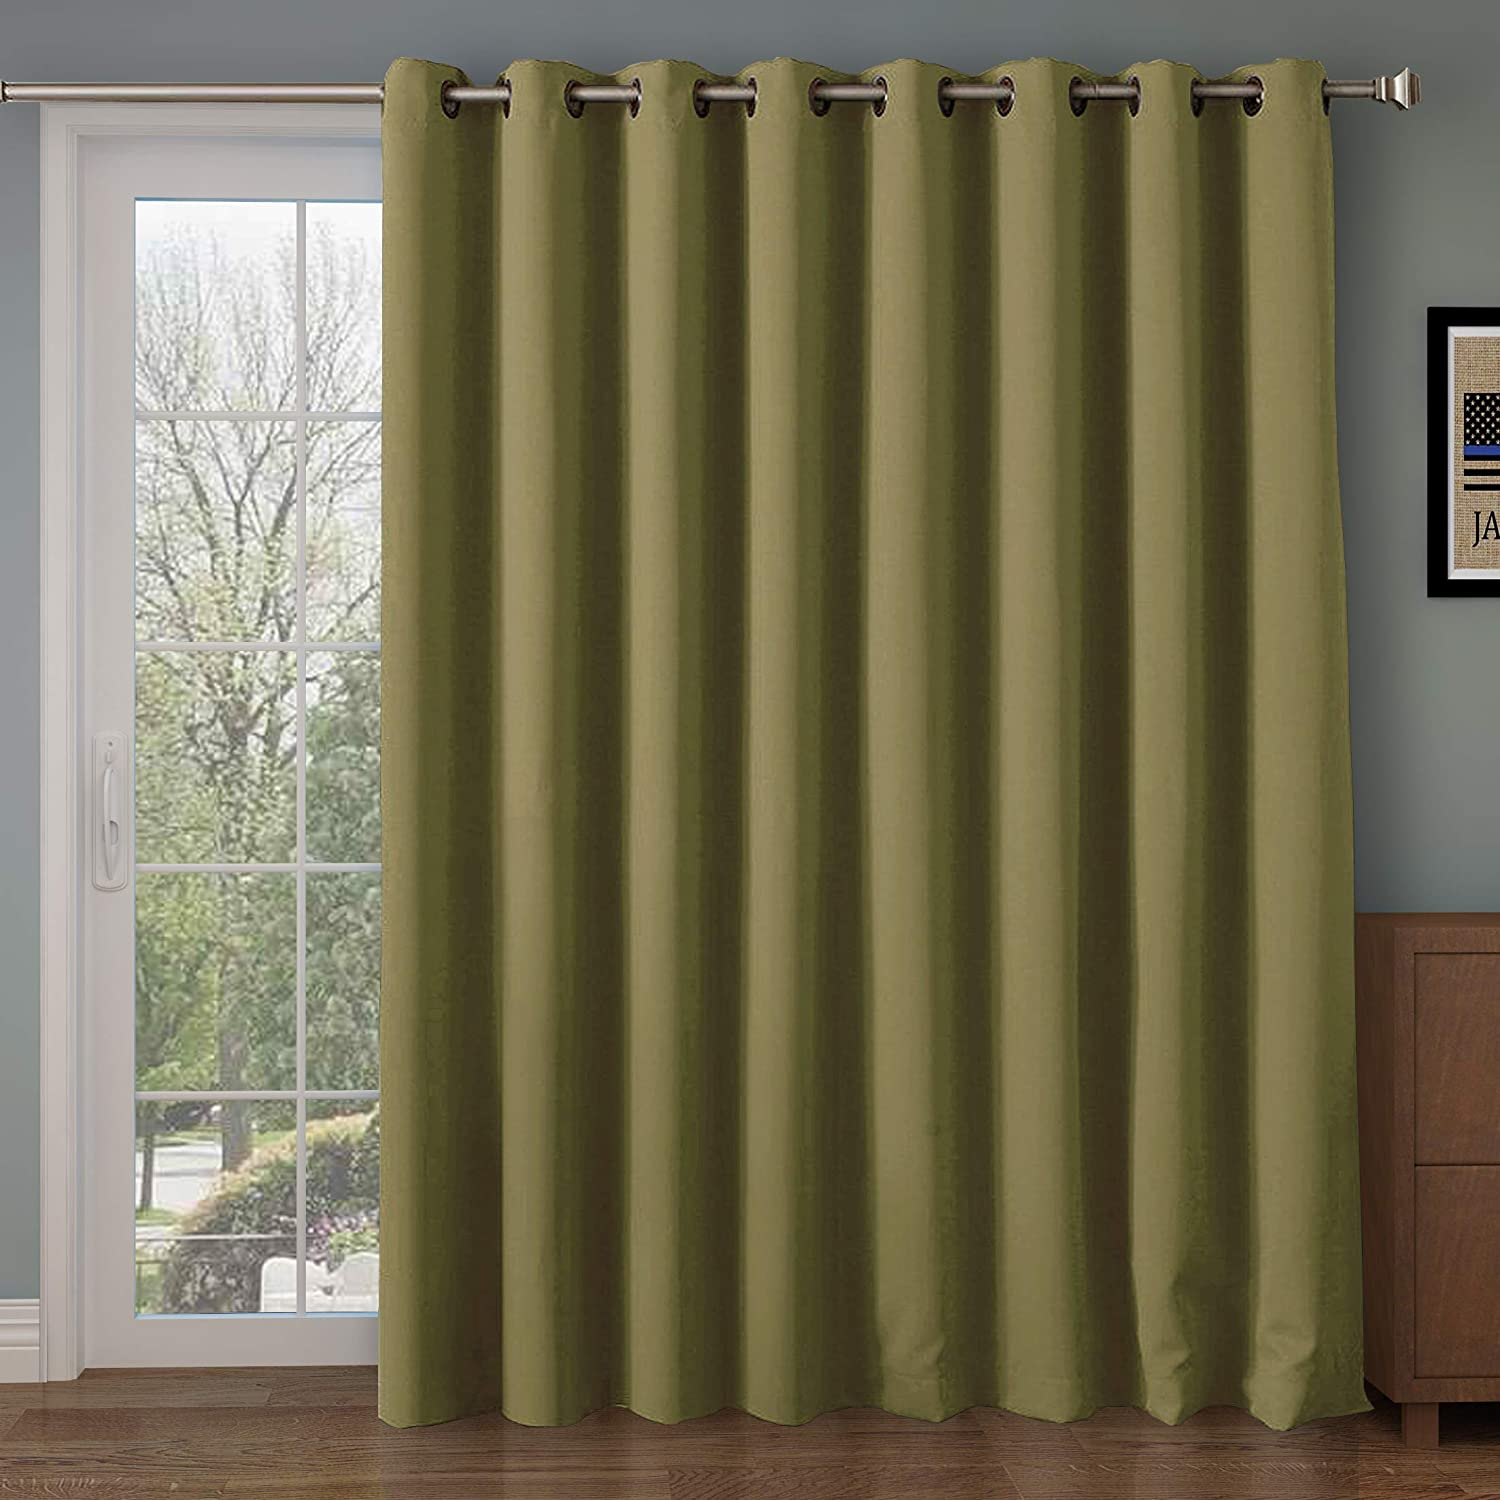 Rose Home Fashion RHF Wide Thermal Blackout Patio Door Curtain Panel, Sliding Door Curtains Antique Bronze Grommet Top 100W by 84L Inches-Olive